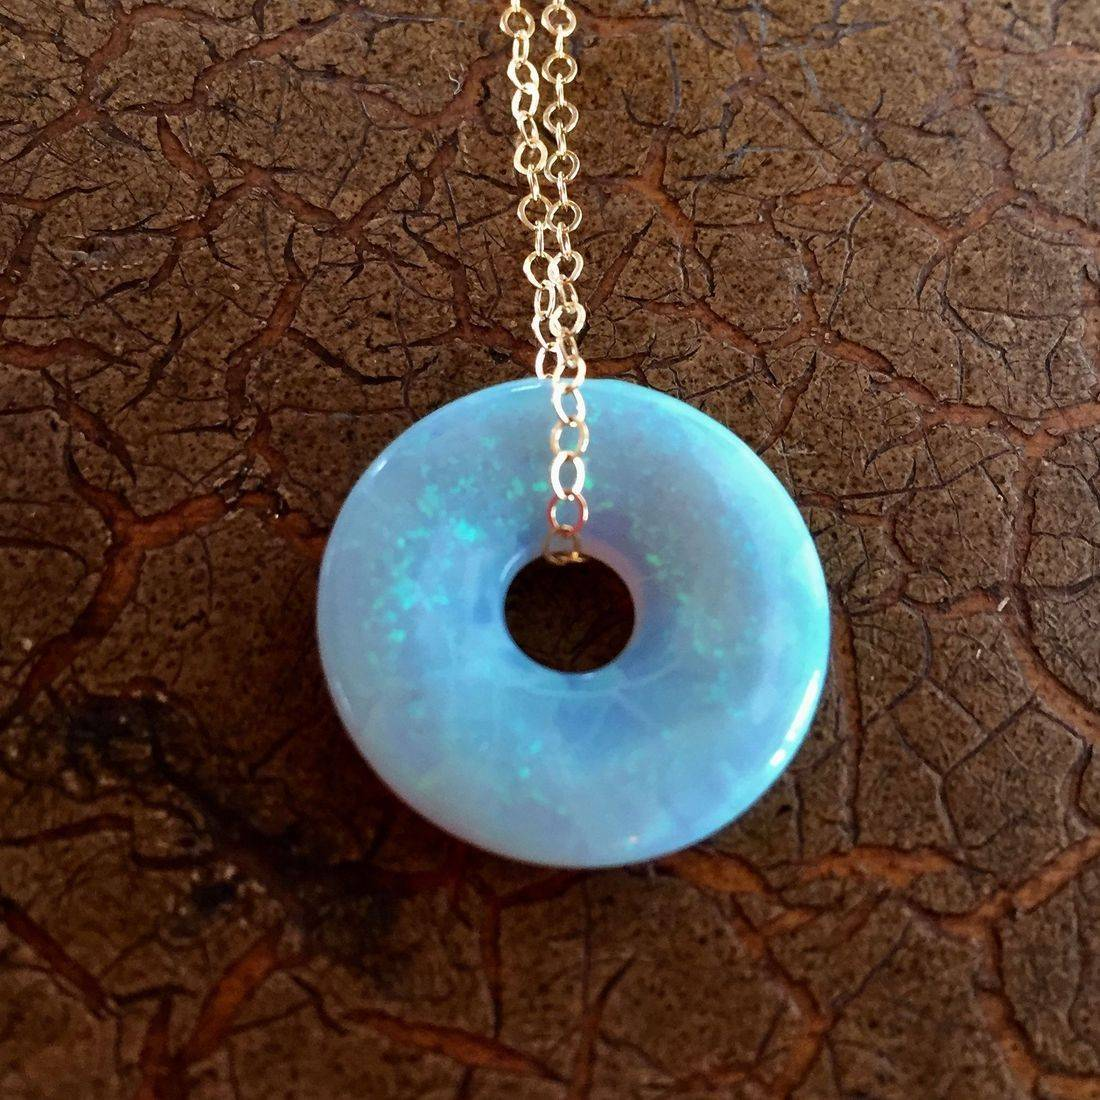 """Cultured Opal Lifesavers 18mm on 17"""" 14k gold filled chain $95.00 USD or 126.00 CAD"""